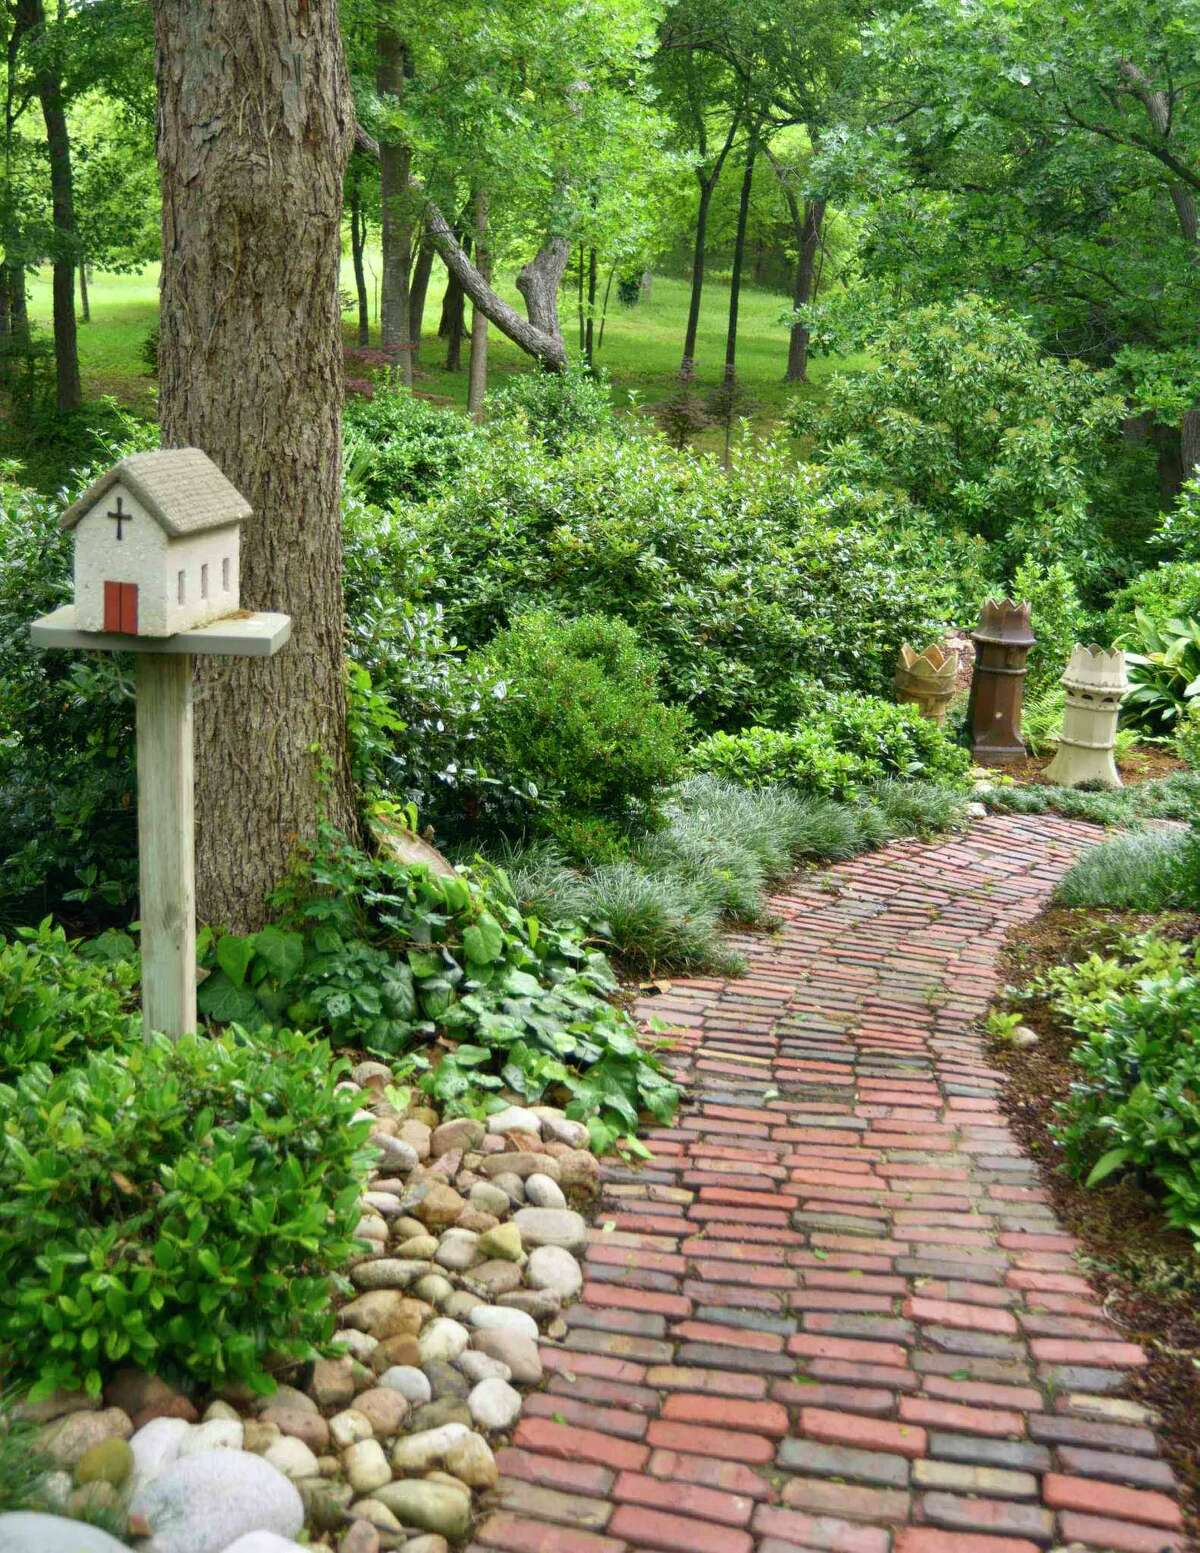 Mulches allow free passage of air and water in and out of the soil.